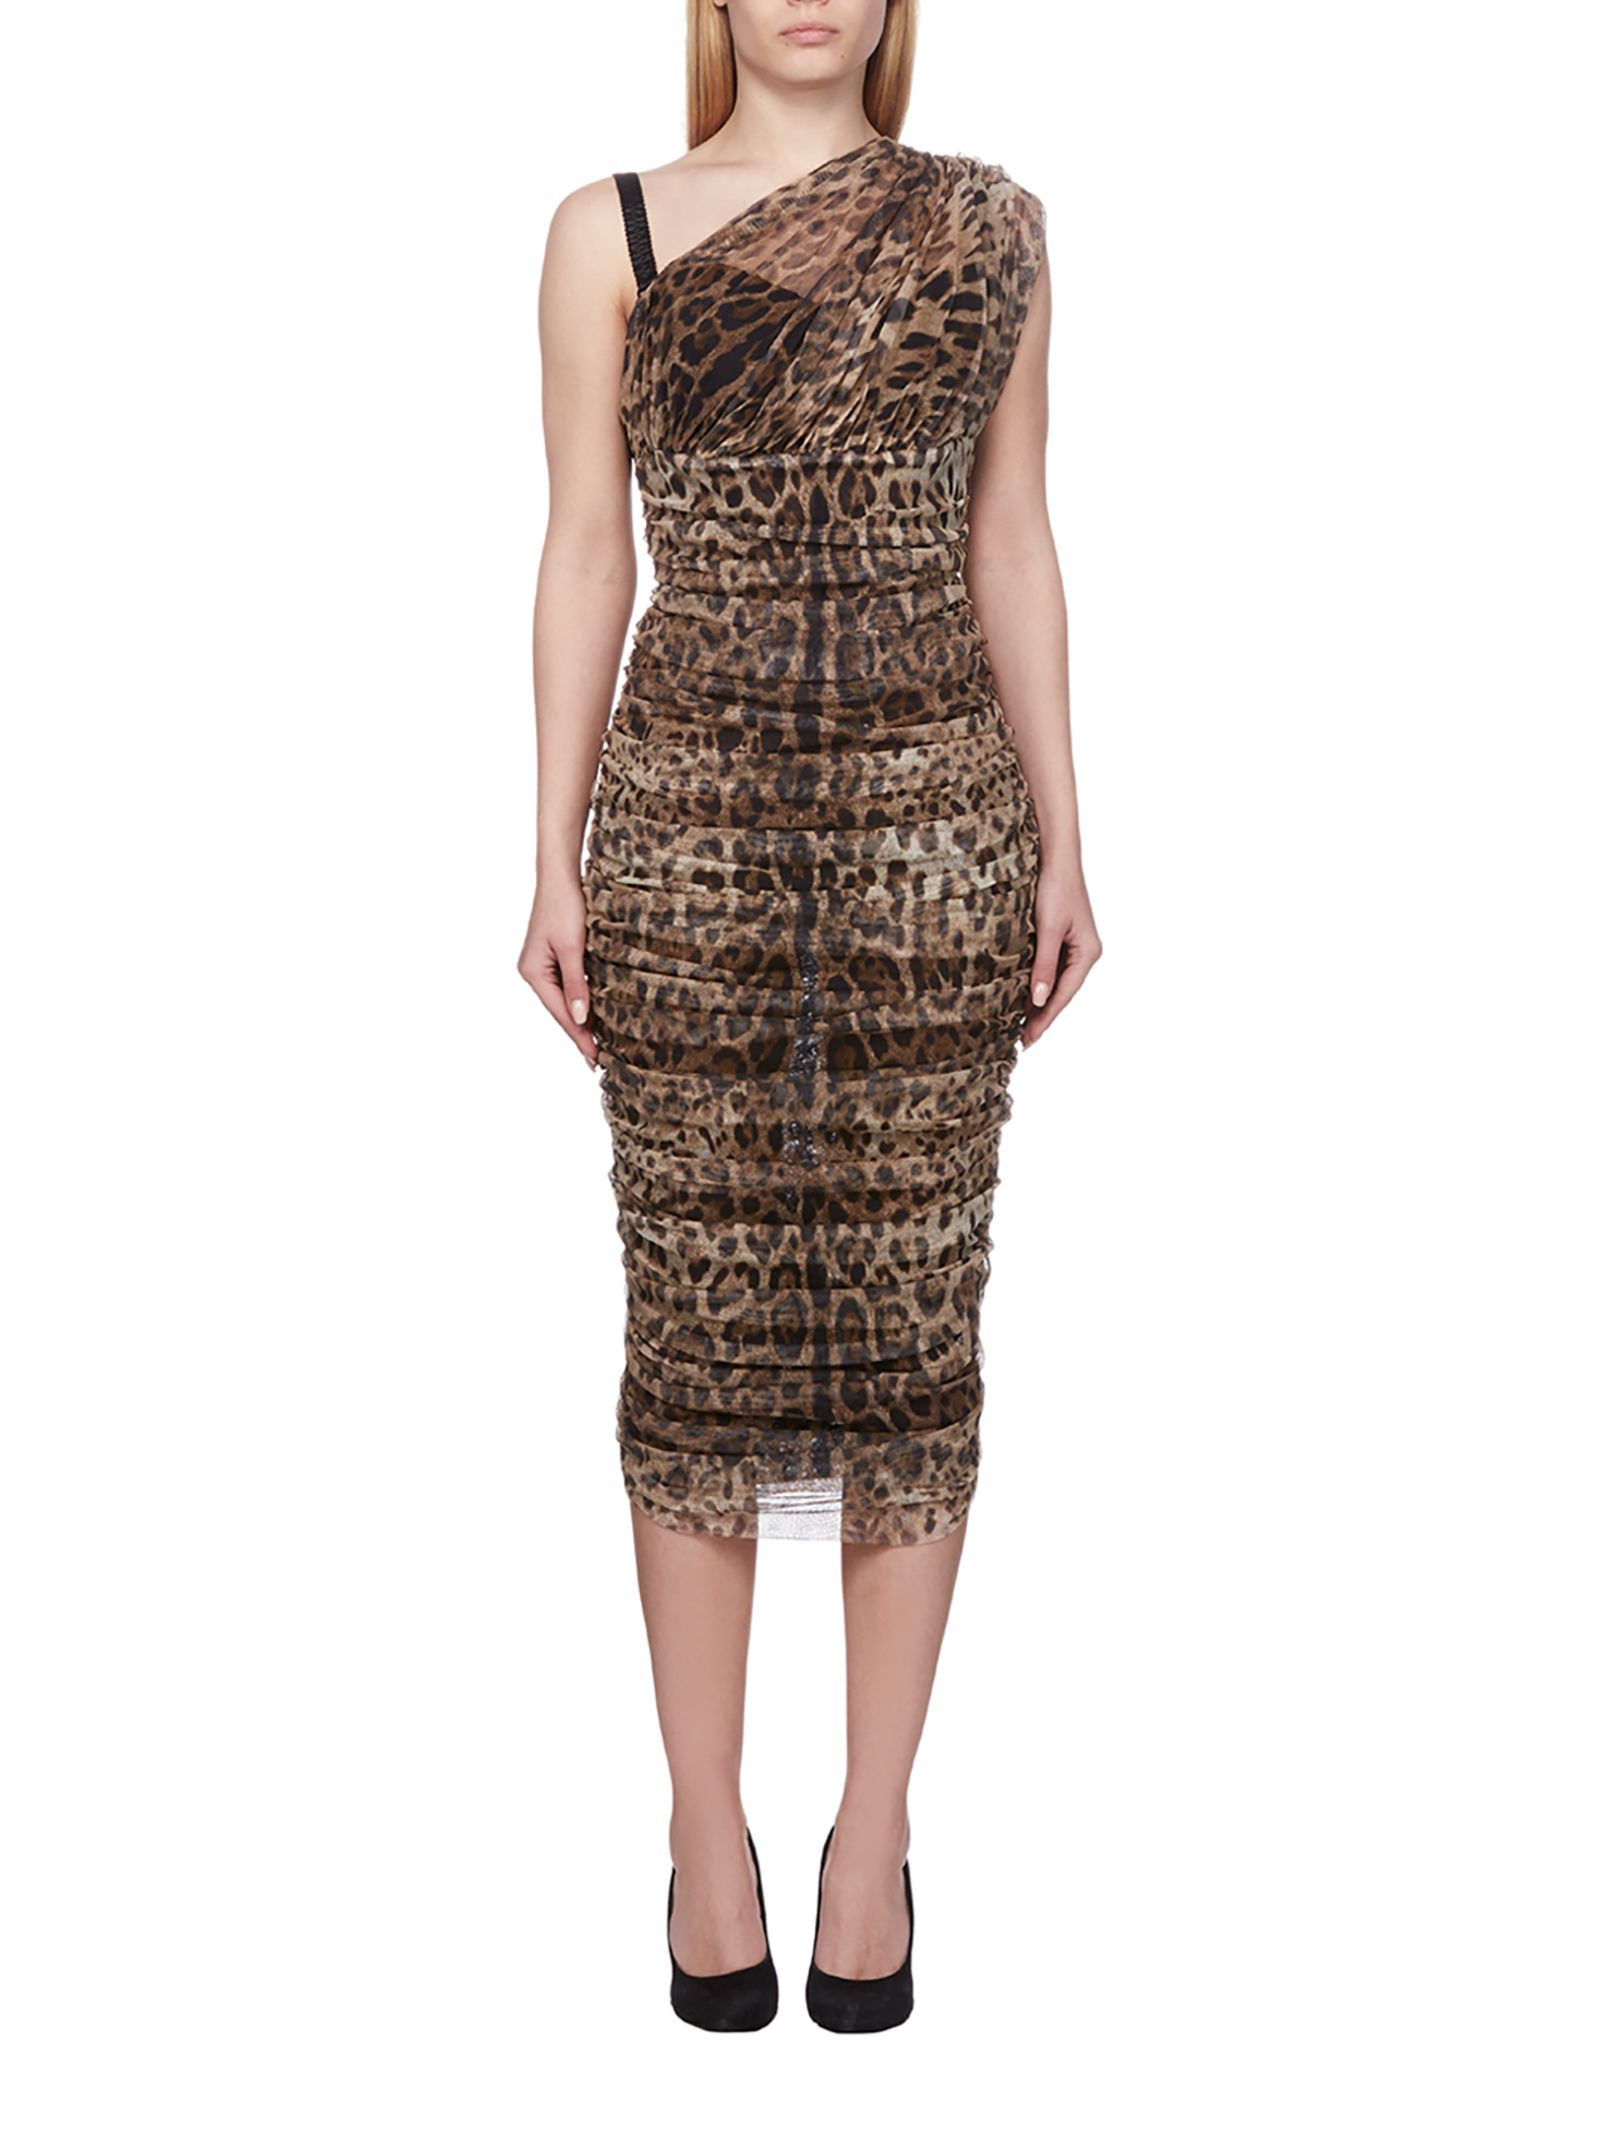 Dolce & Gabbana Leopard Ruched Dress